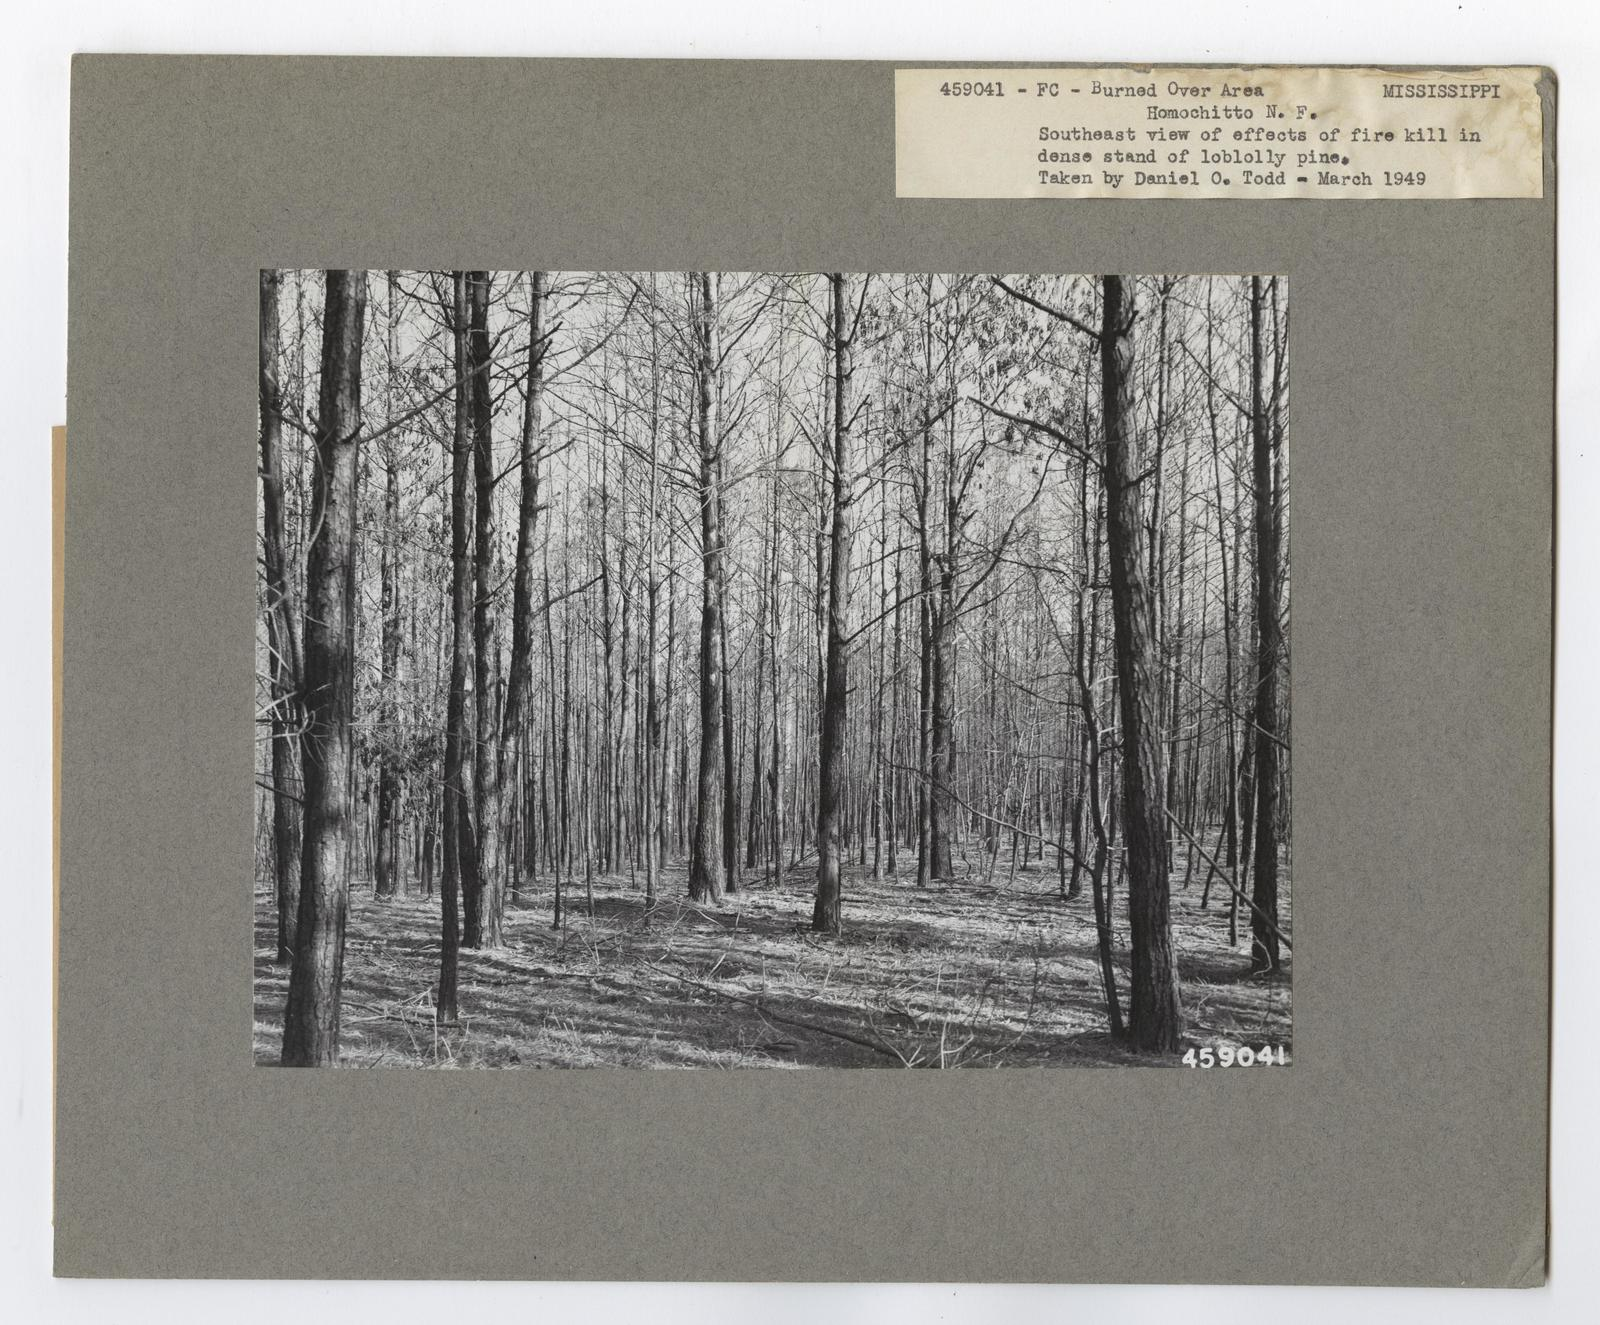 Burned -Over Areas - Mississippi